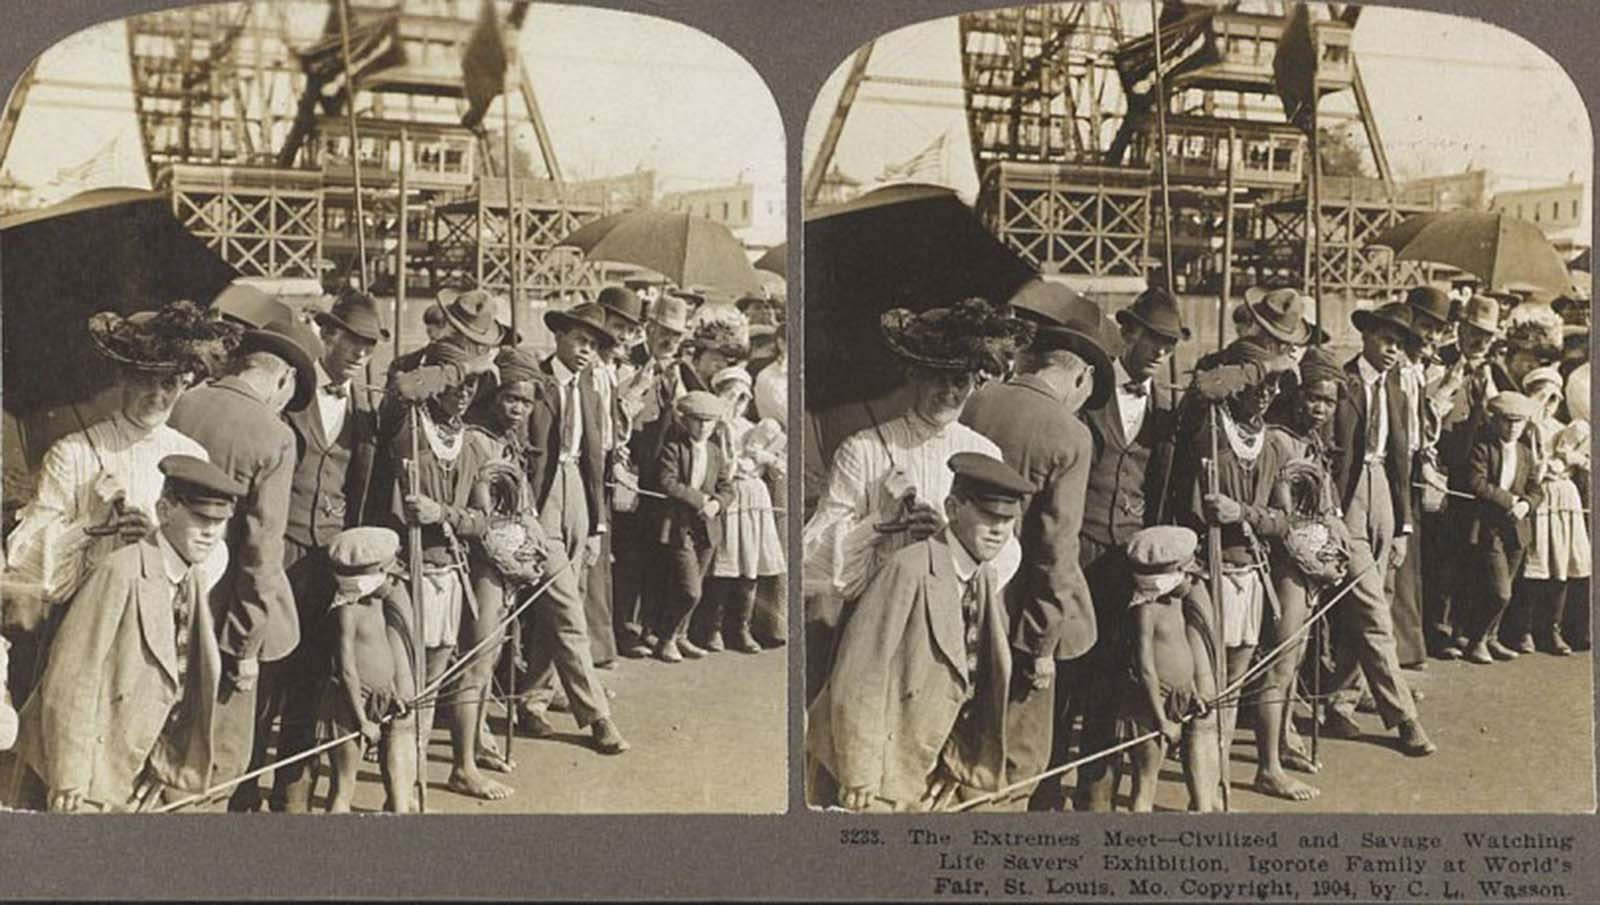 A photograph crudely named 'The extremes meet - civilized and savage watching life savers' exhibition' shows a scene from the World's Fair St. Louis, 1904, with tourists watching people deemed 'primitive'.